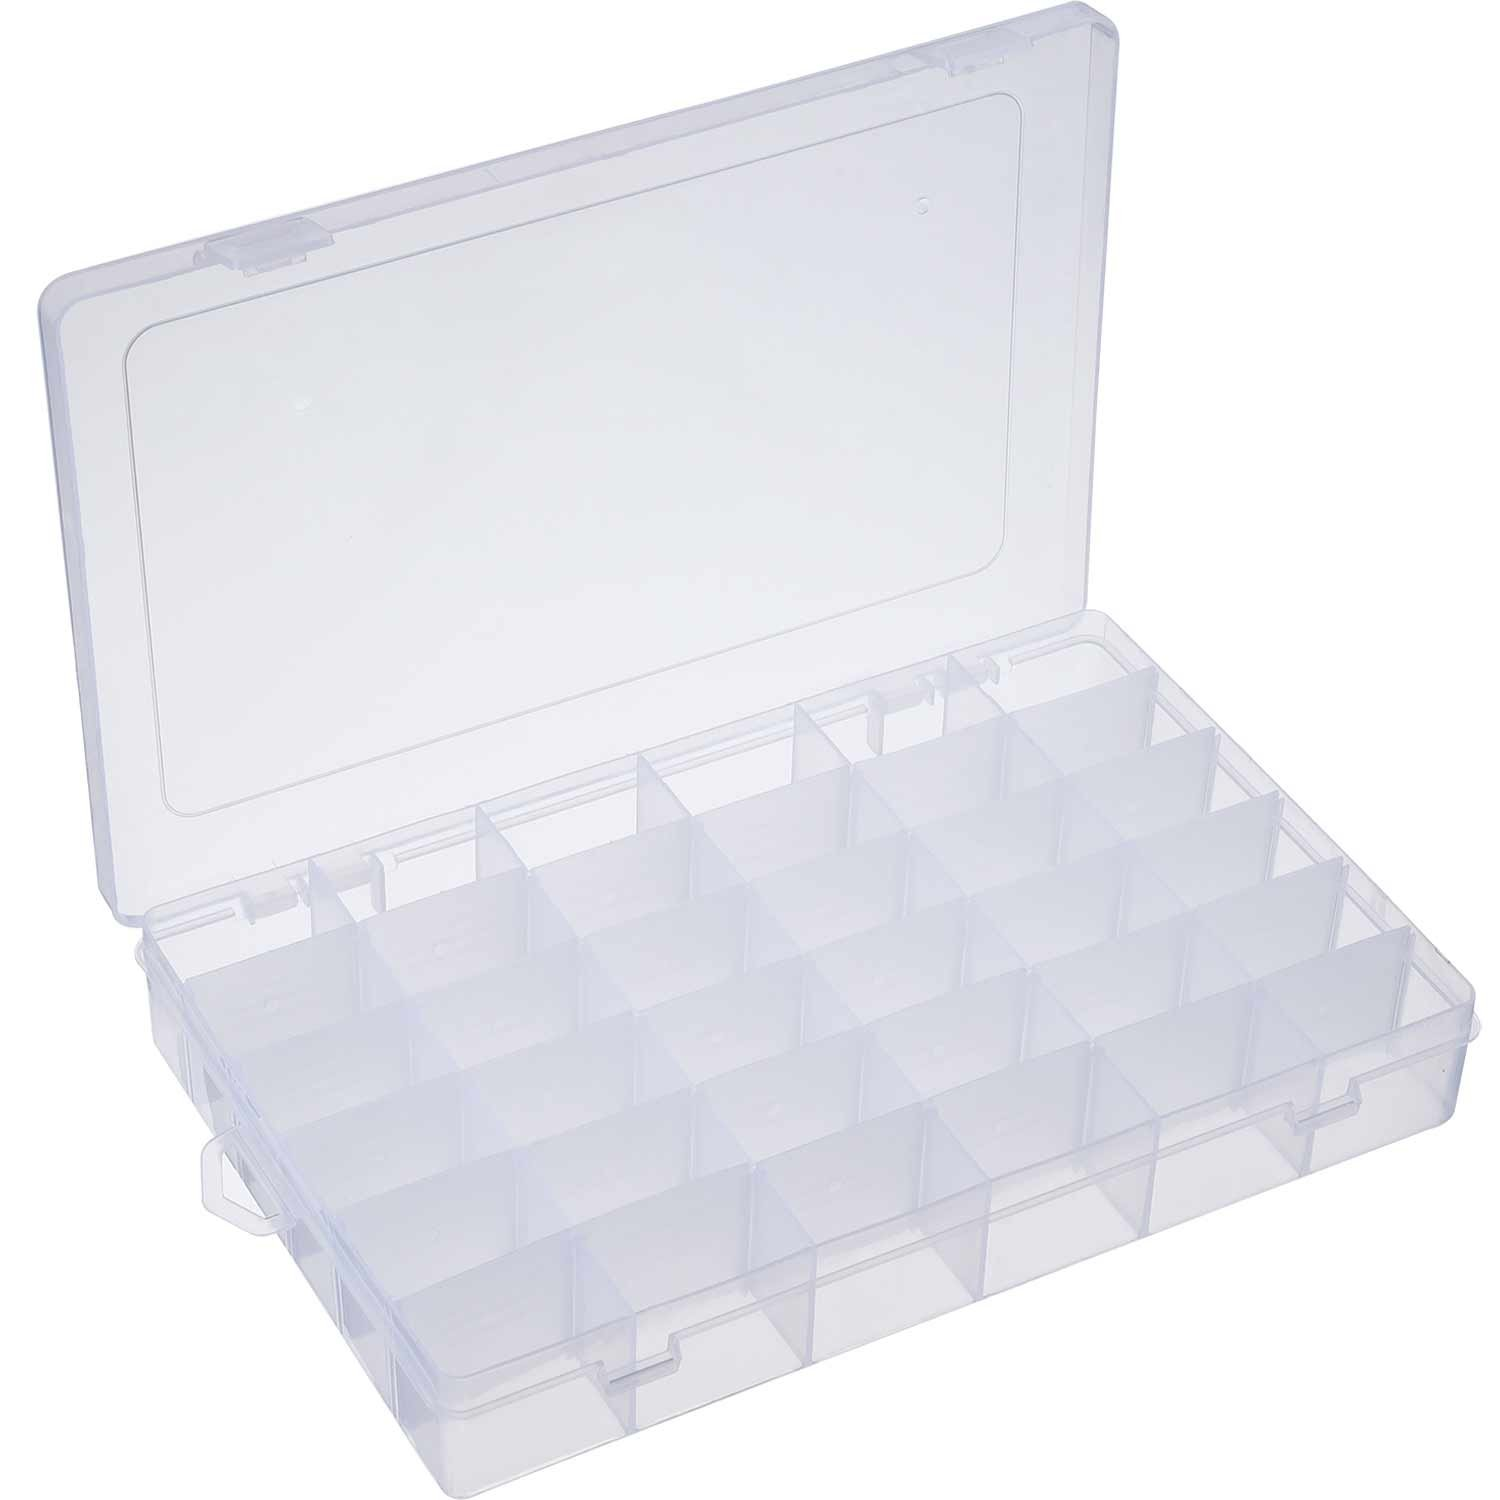 Outus 2 Pack 36 Grids Jewelry Dividers Box Organizer Adjustable Clear Plastic Bead Case Storage Container by Outus